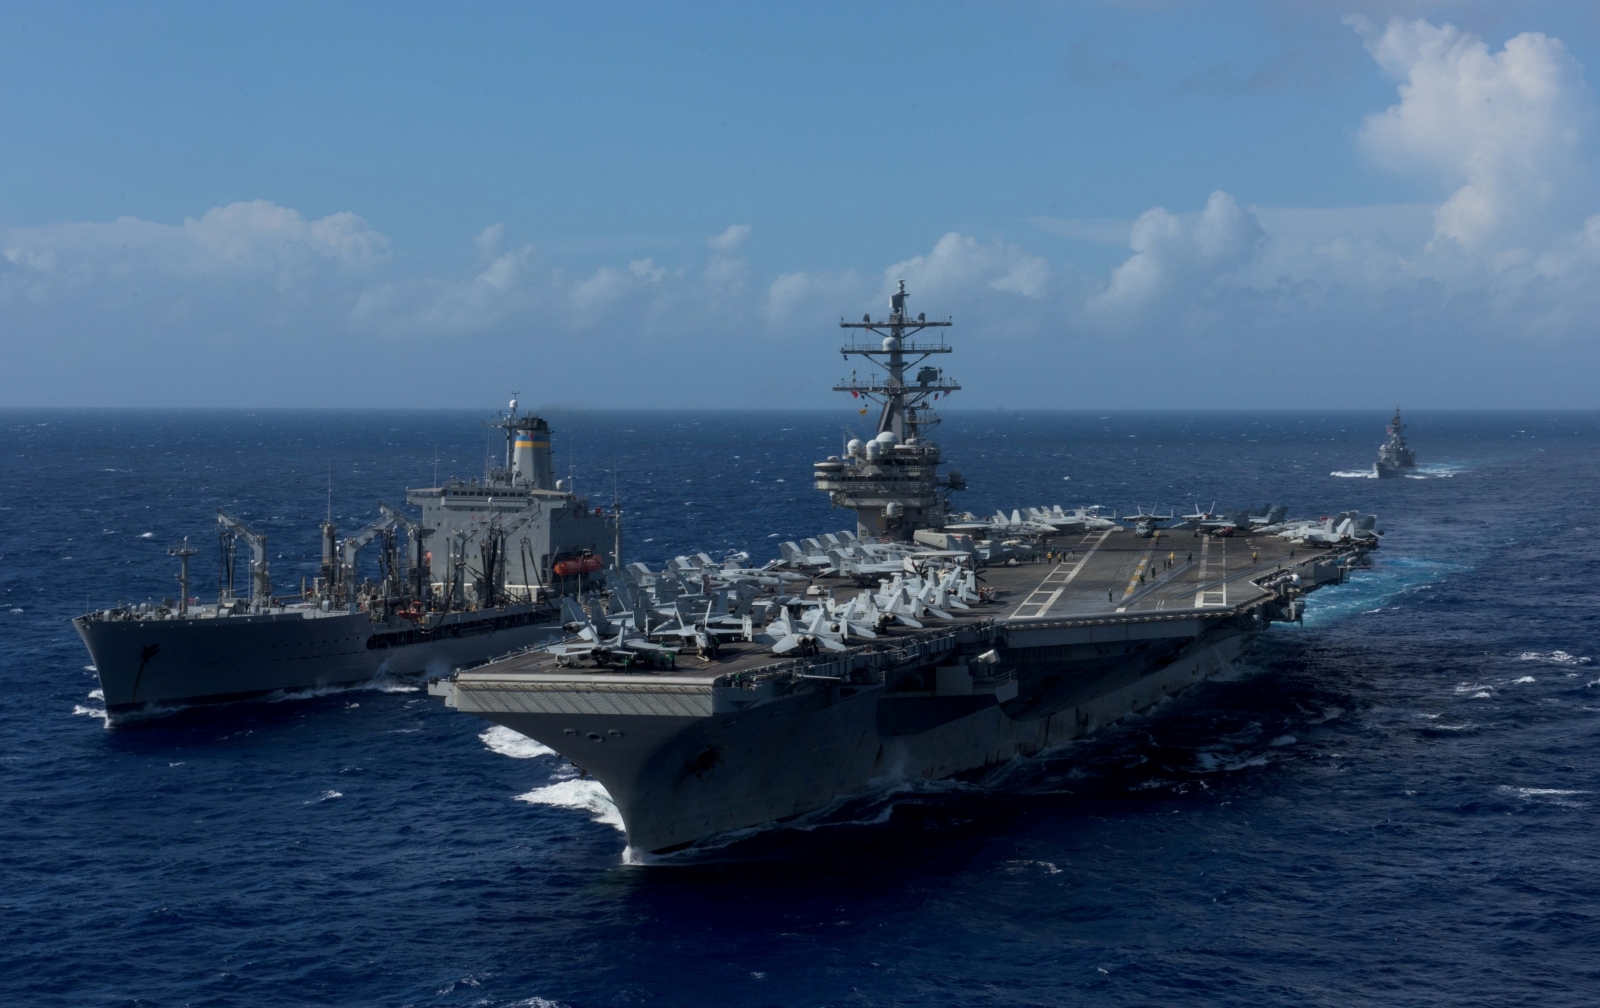 U.S. carriers in rare Pacific op amid N. Korea tensions